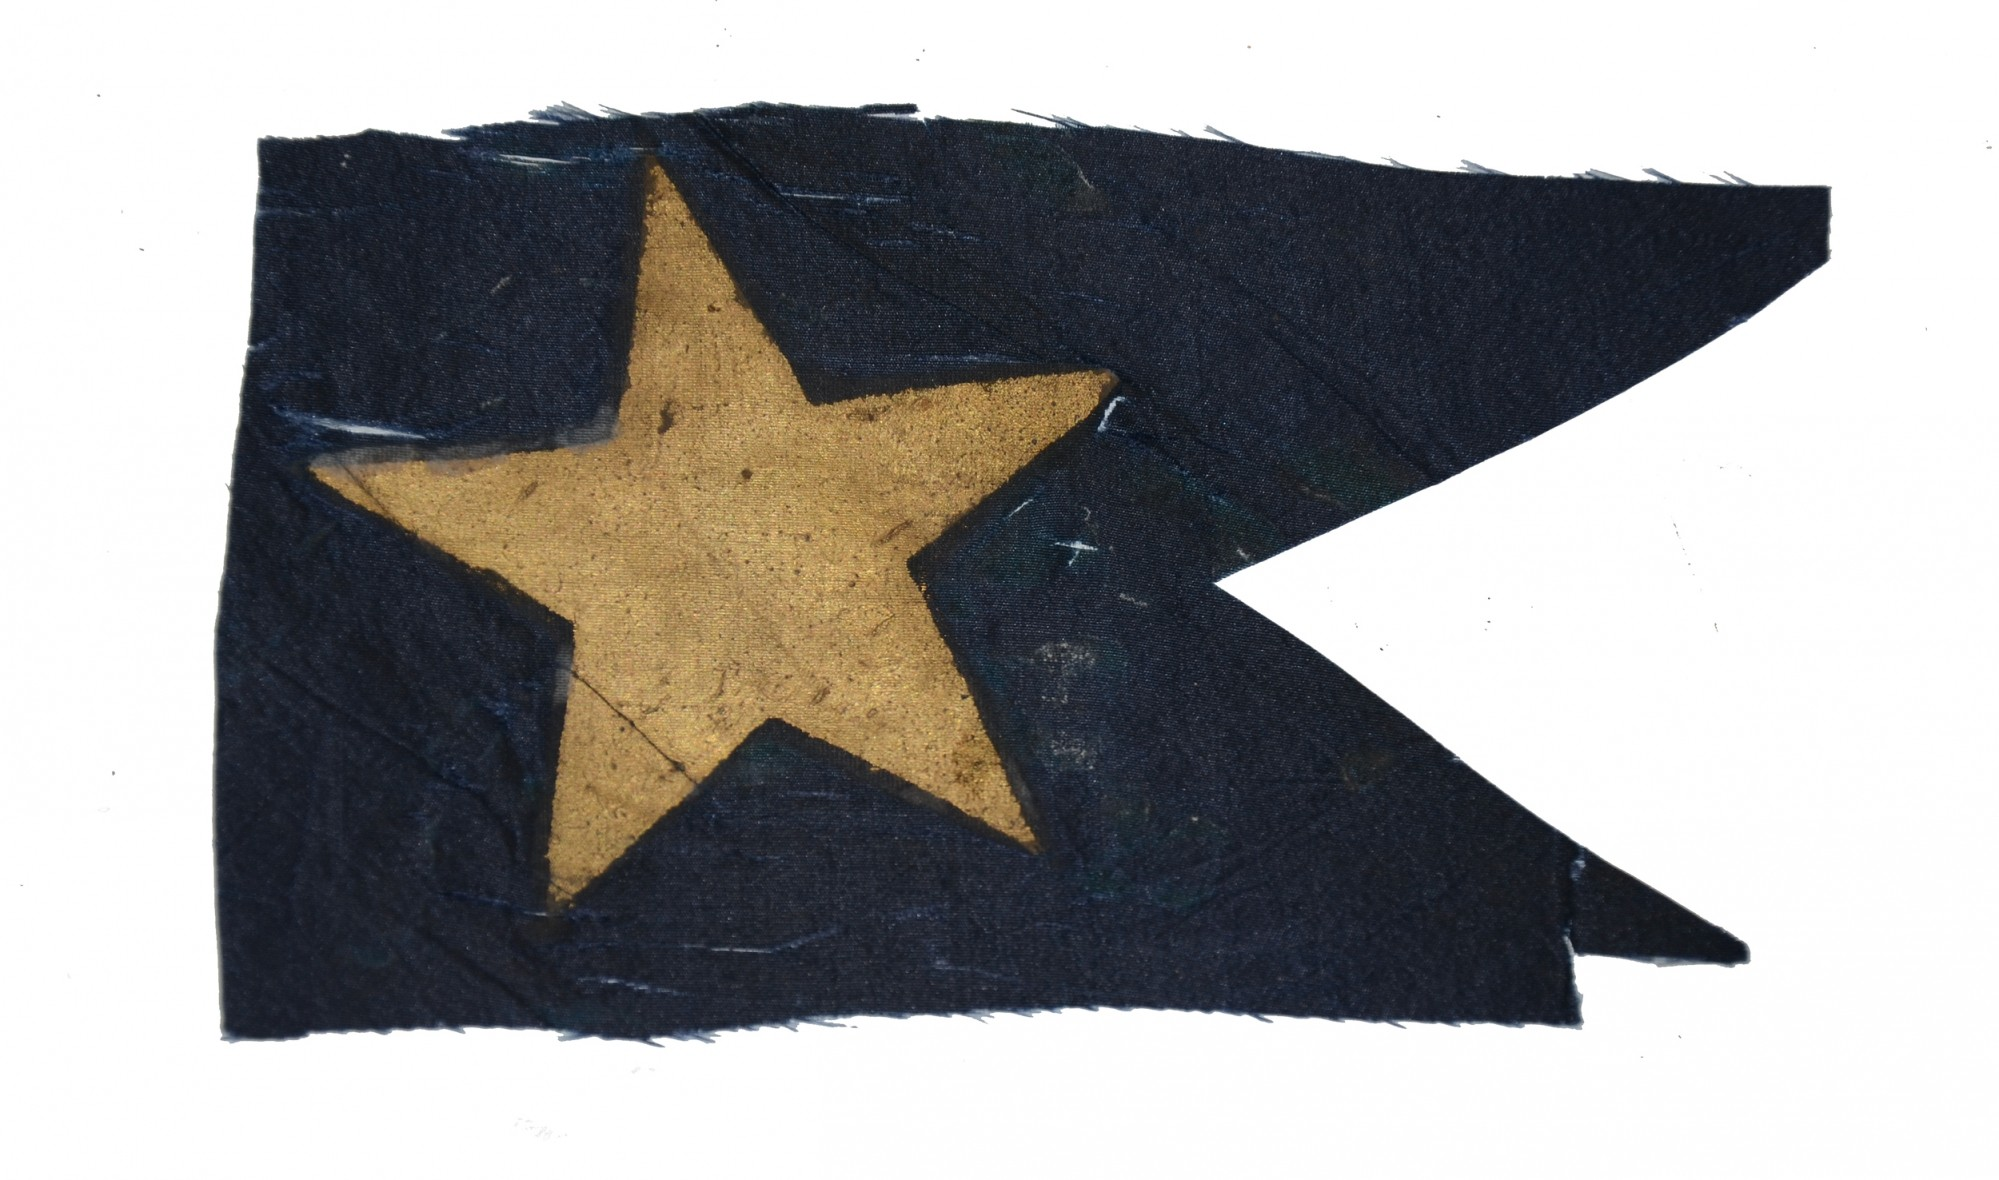 (SUPPOSED CS) FLAG REMNANT